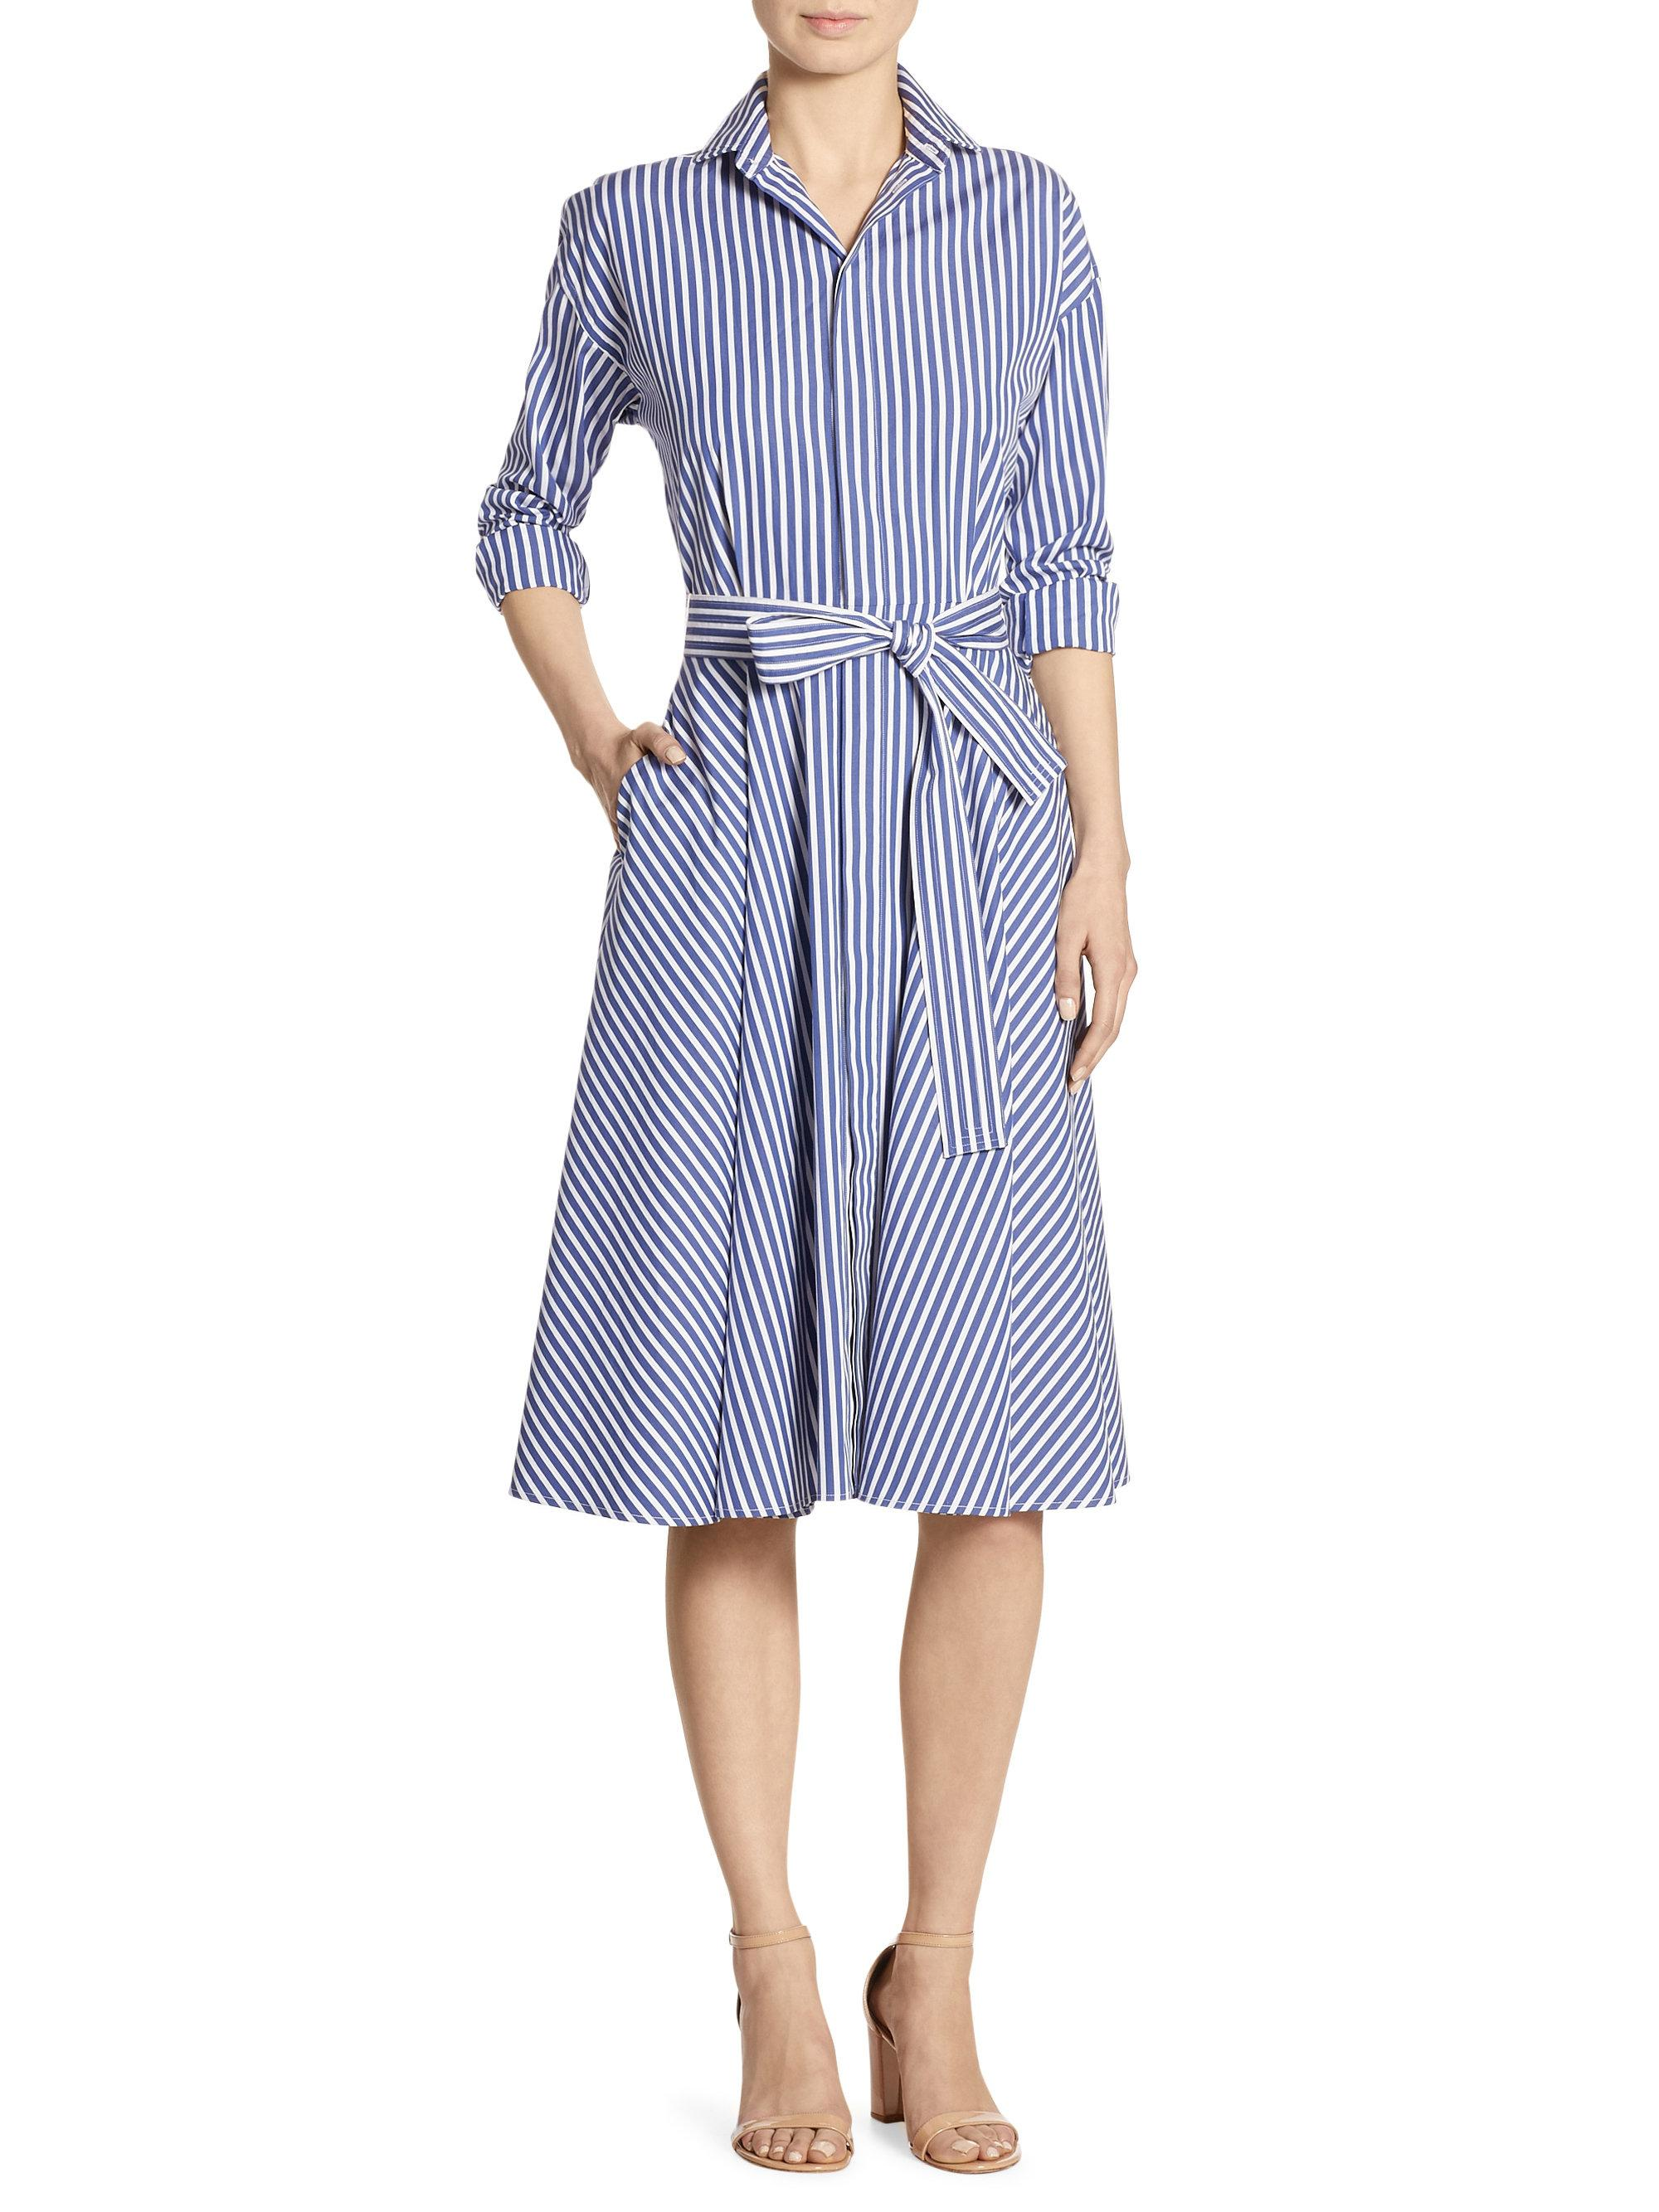 Lyst Polo Ralph Lauren Striped Cotton Poplin Shirtdress In Blue